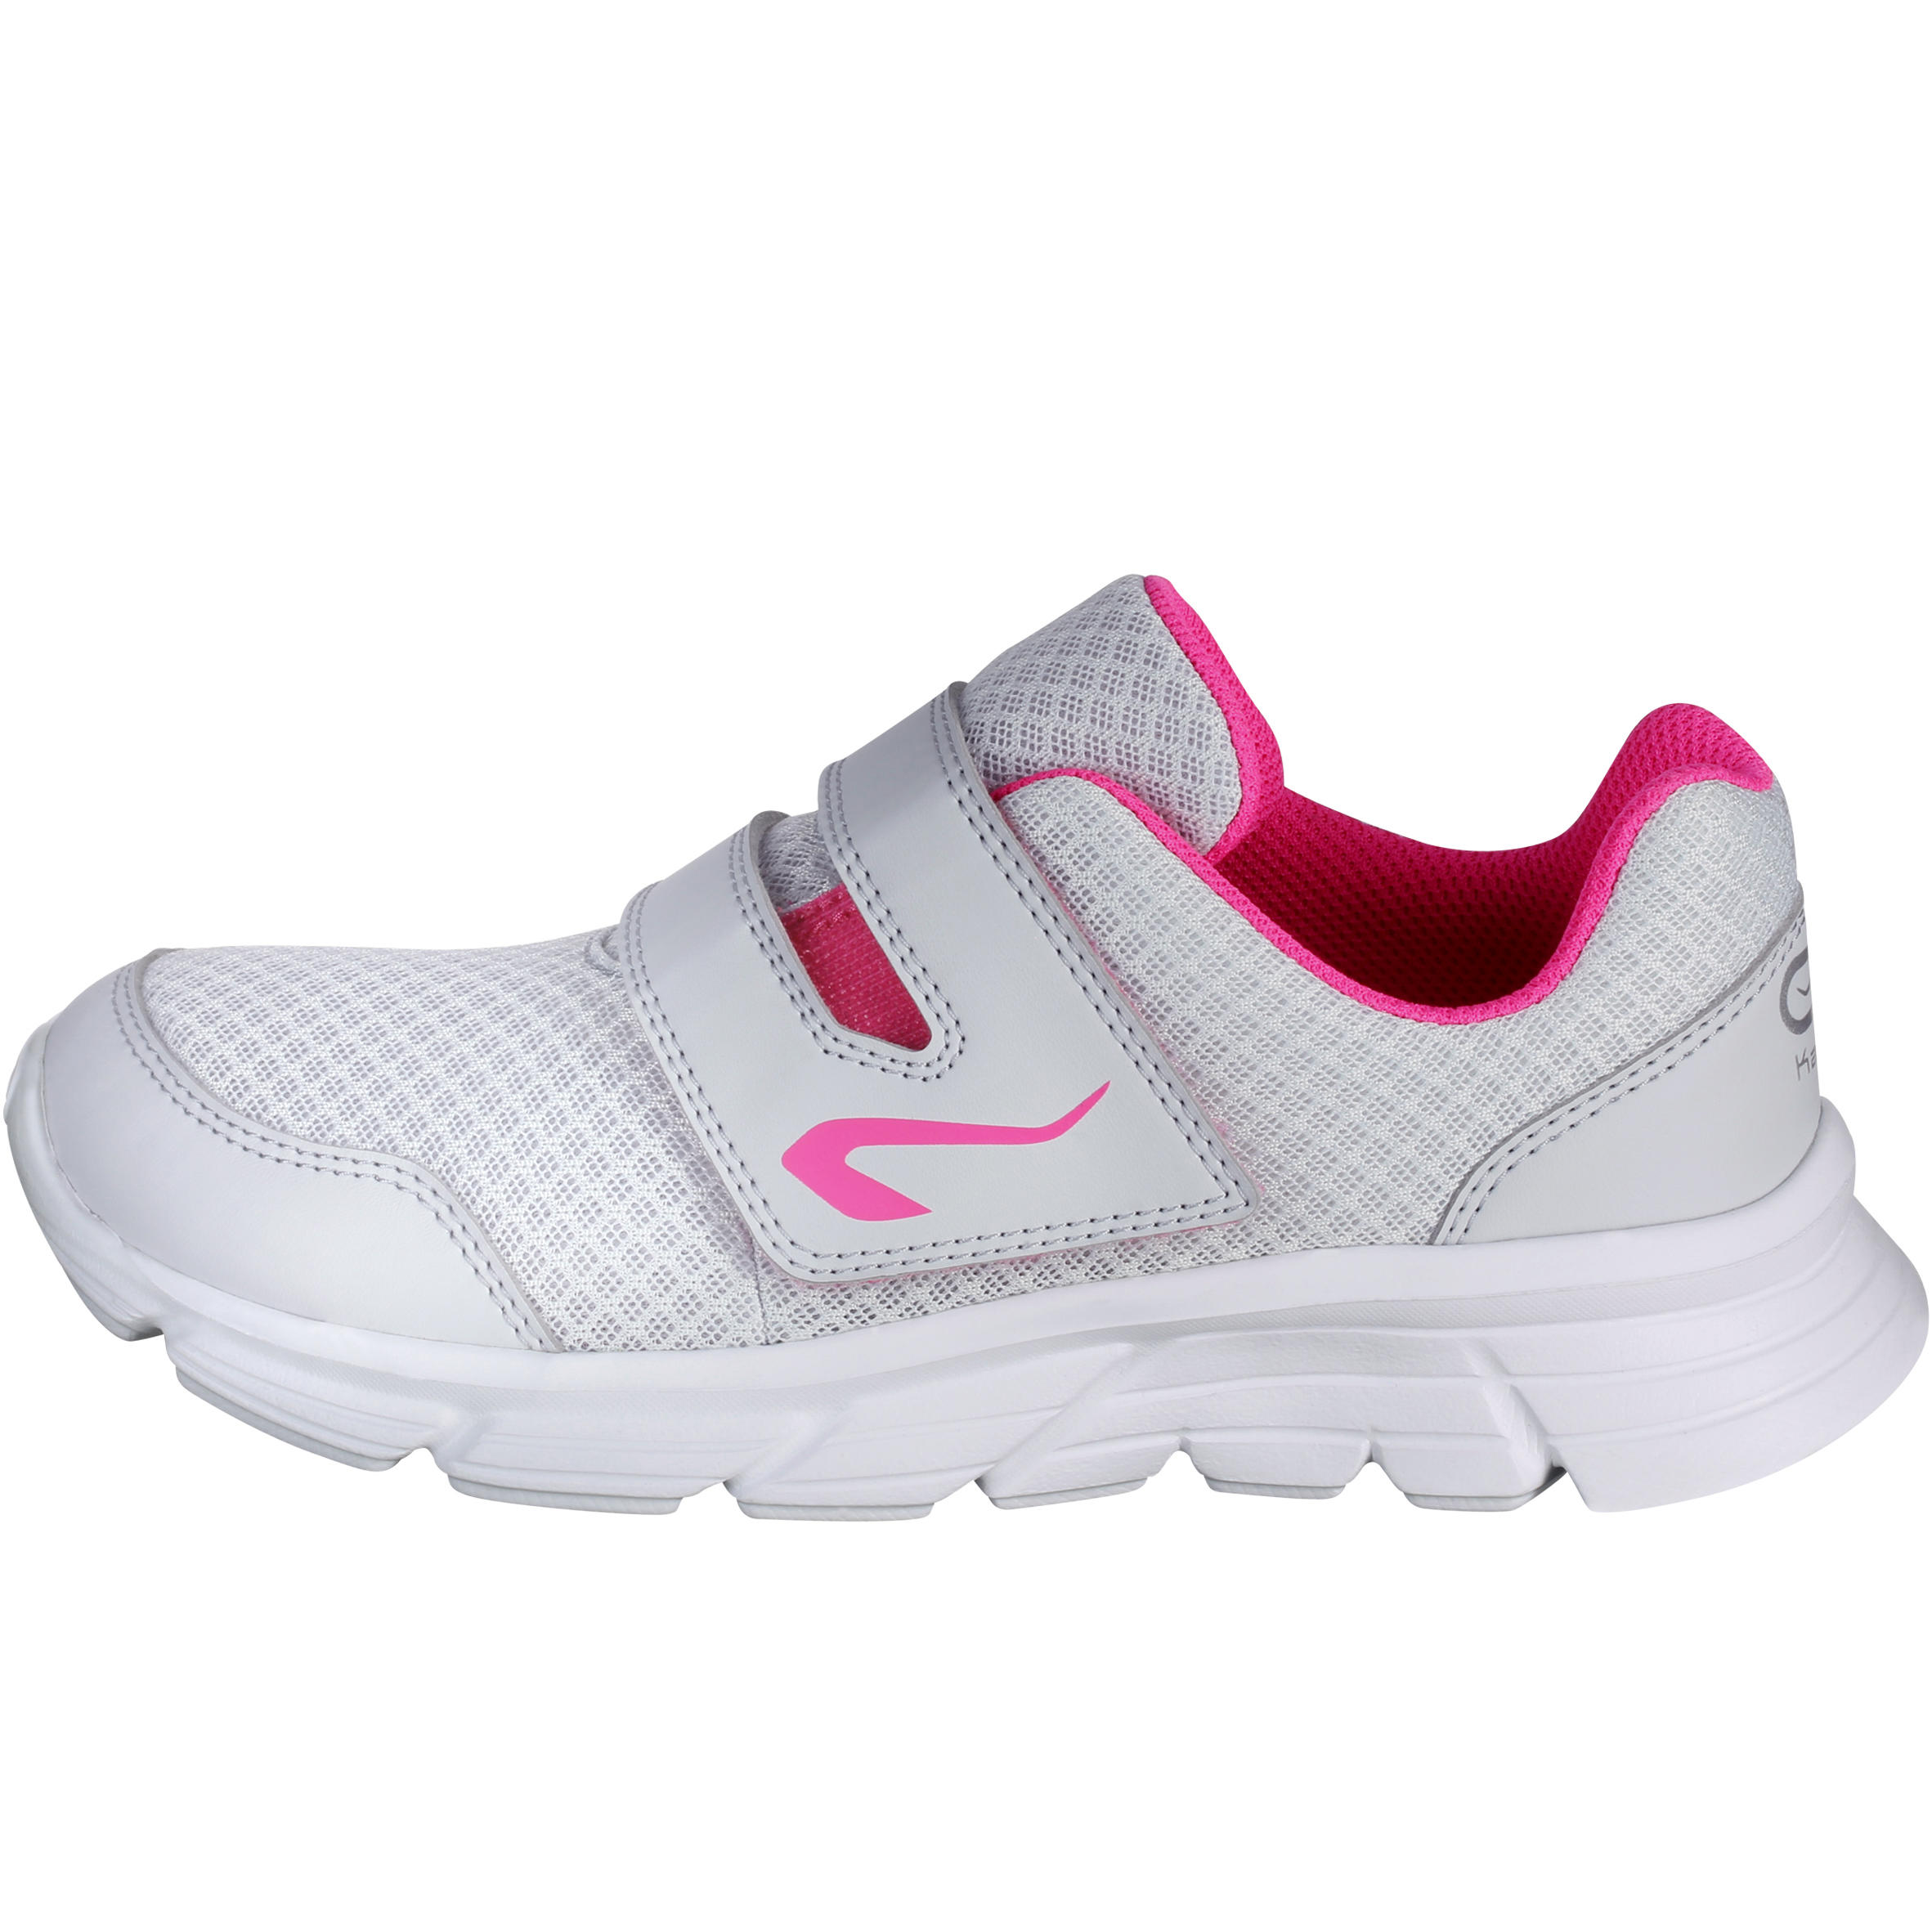 KID'S RUNNING SHOES EKIDEN ONE GREY [RATING: 4.7 ★]